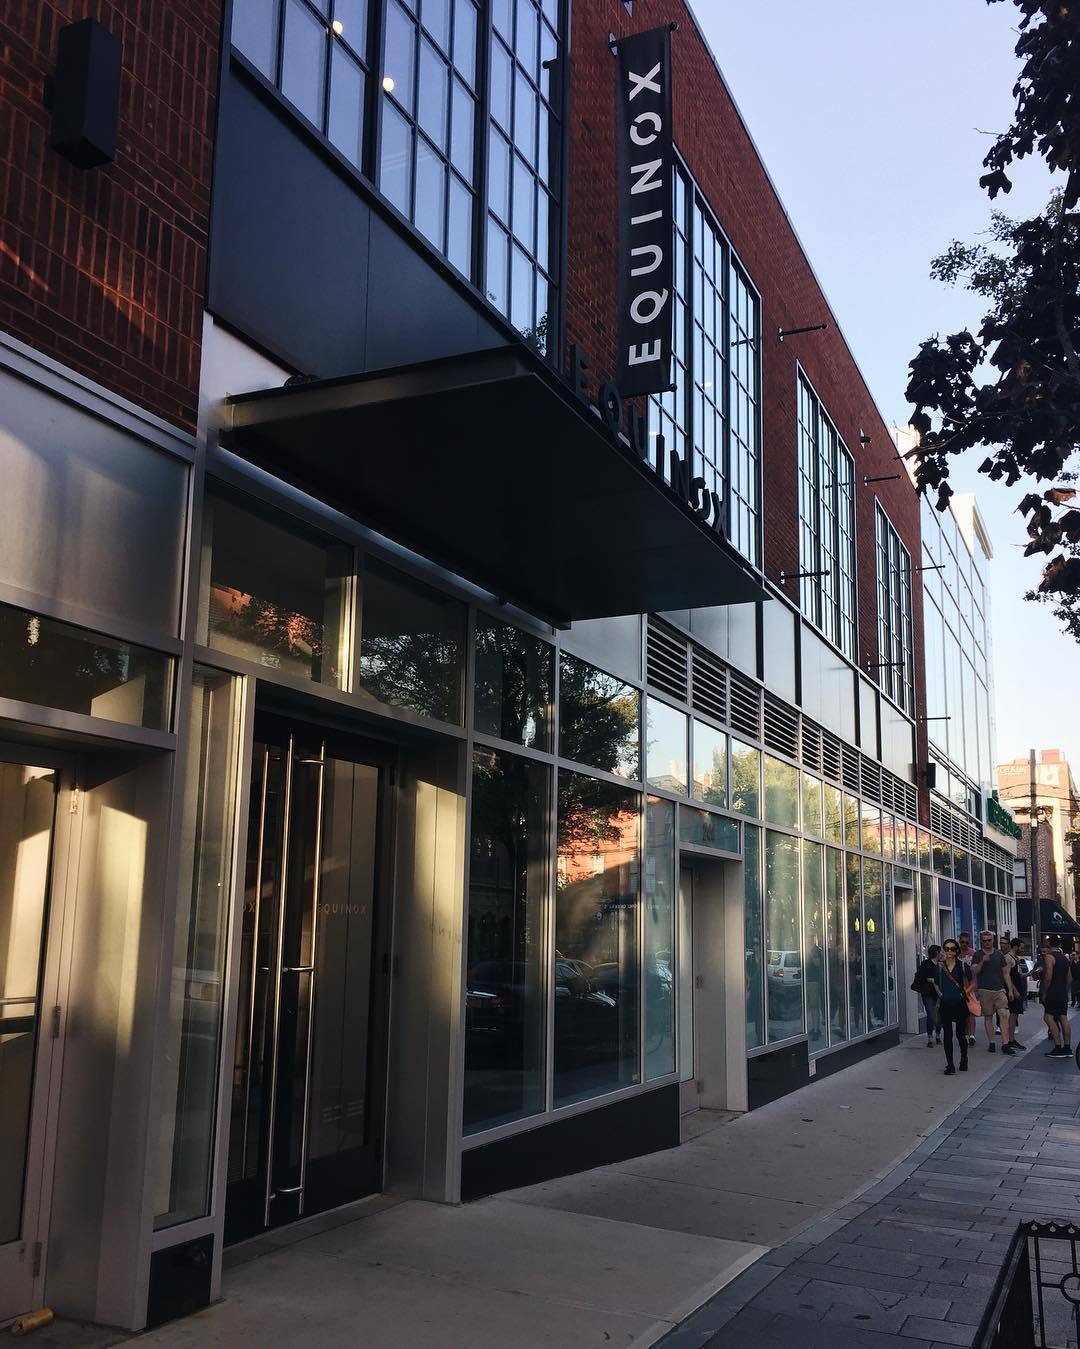 Happy 25th to our favorite partners in fitness and welcome to the neighborhood! @equinox #equinox25